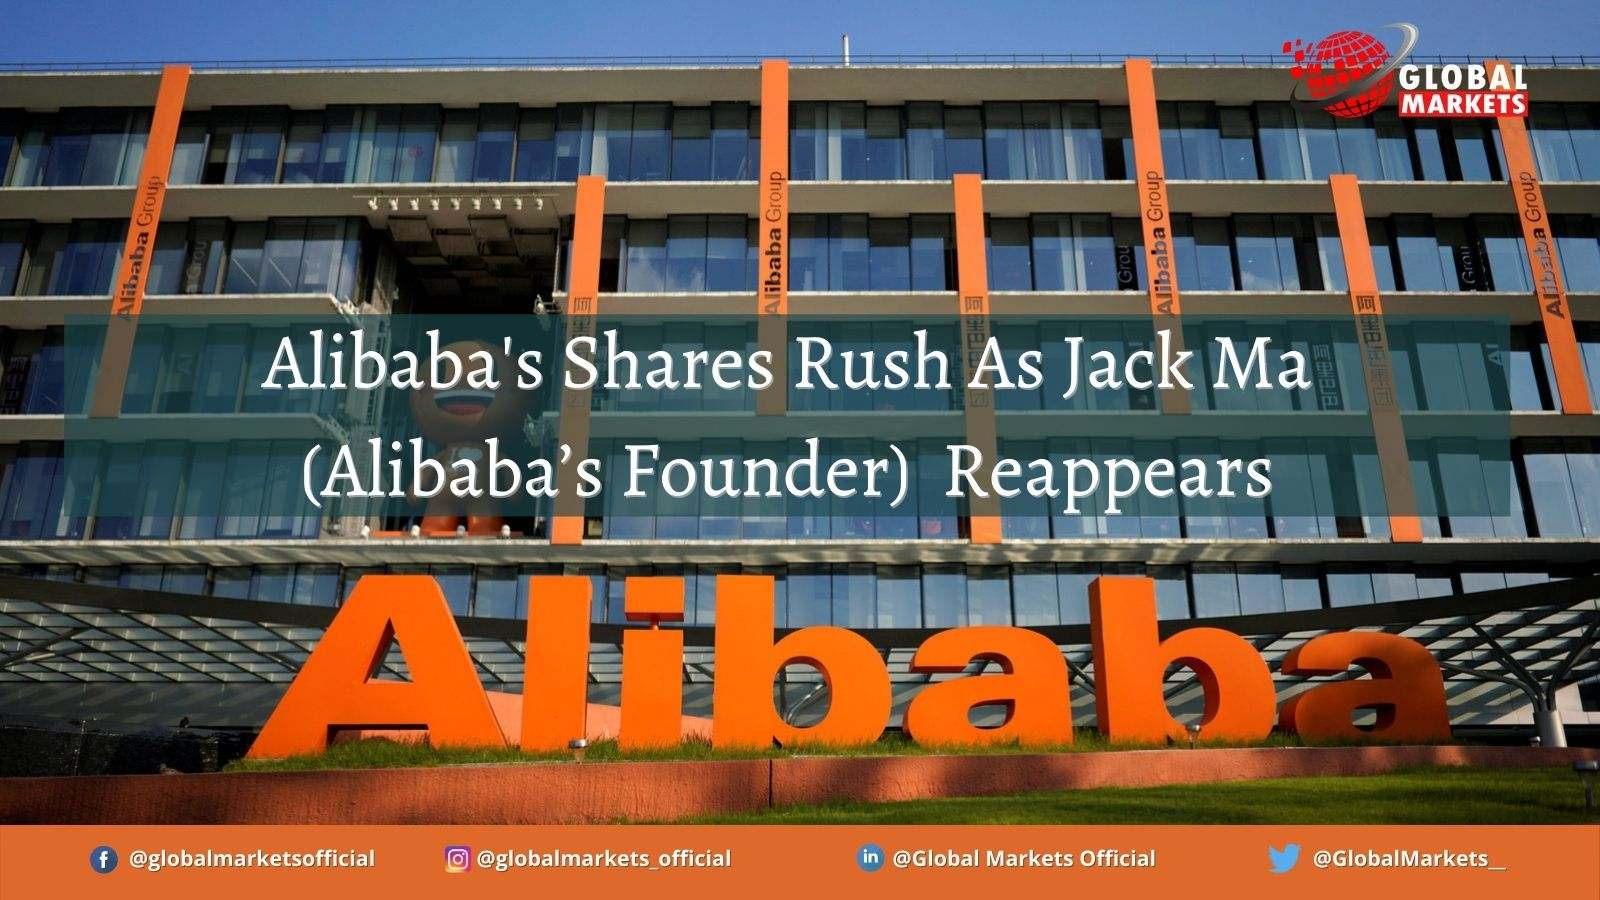 Alibaba's Shares Rush As Jack Ma (Alibaba's Founder) Reappears